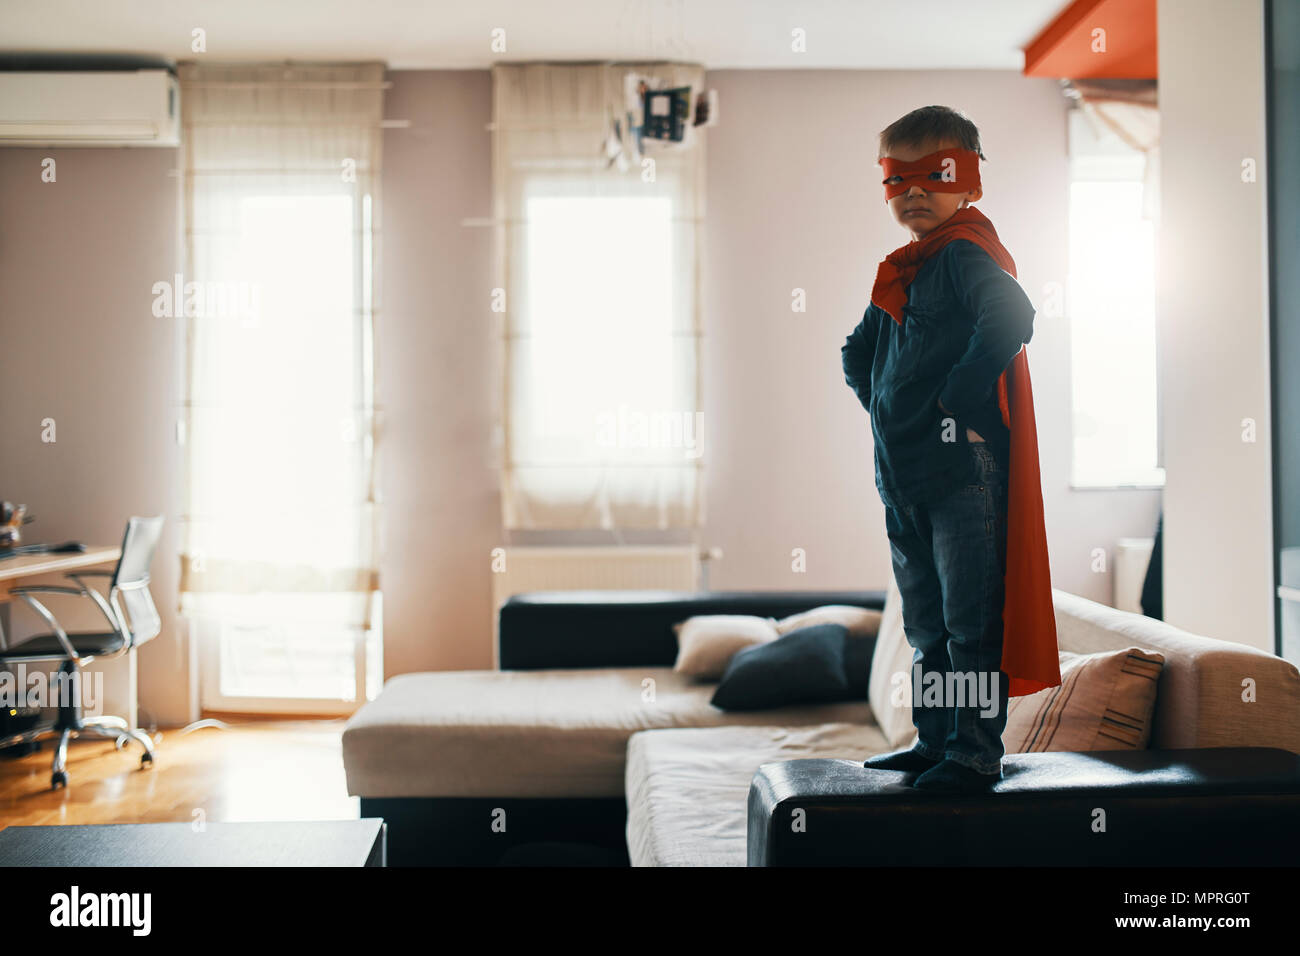 Little boy dressed up as a superhero standing on coffee table at home - Stock Image